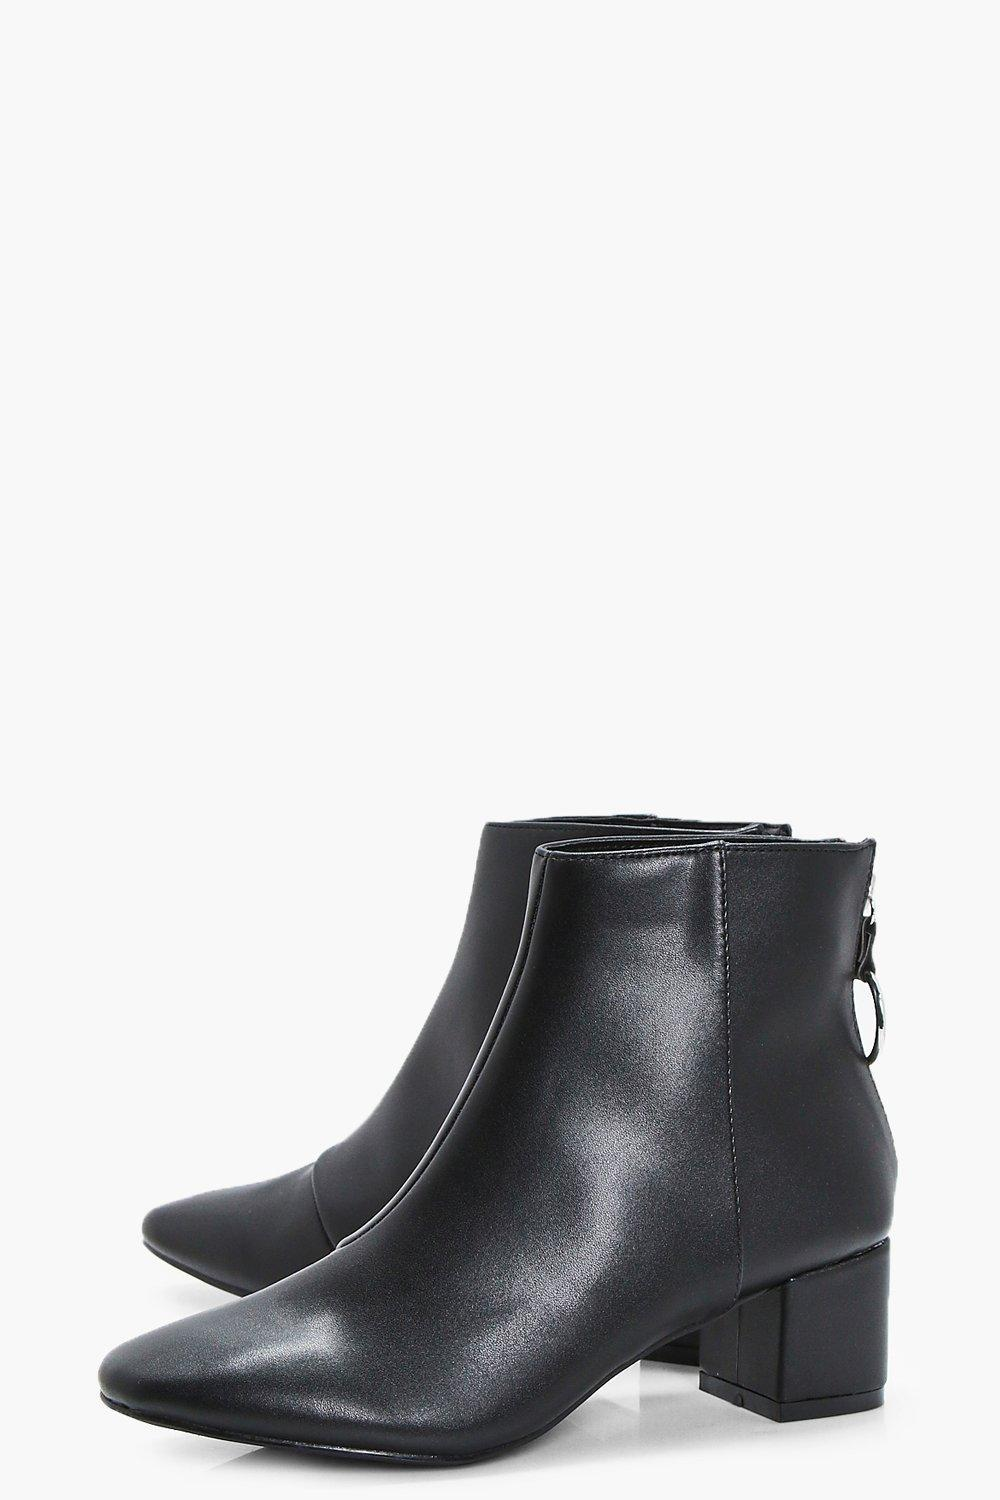 Boohoo O Ring Chelsea Ankle Boots in Black